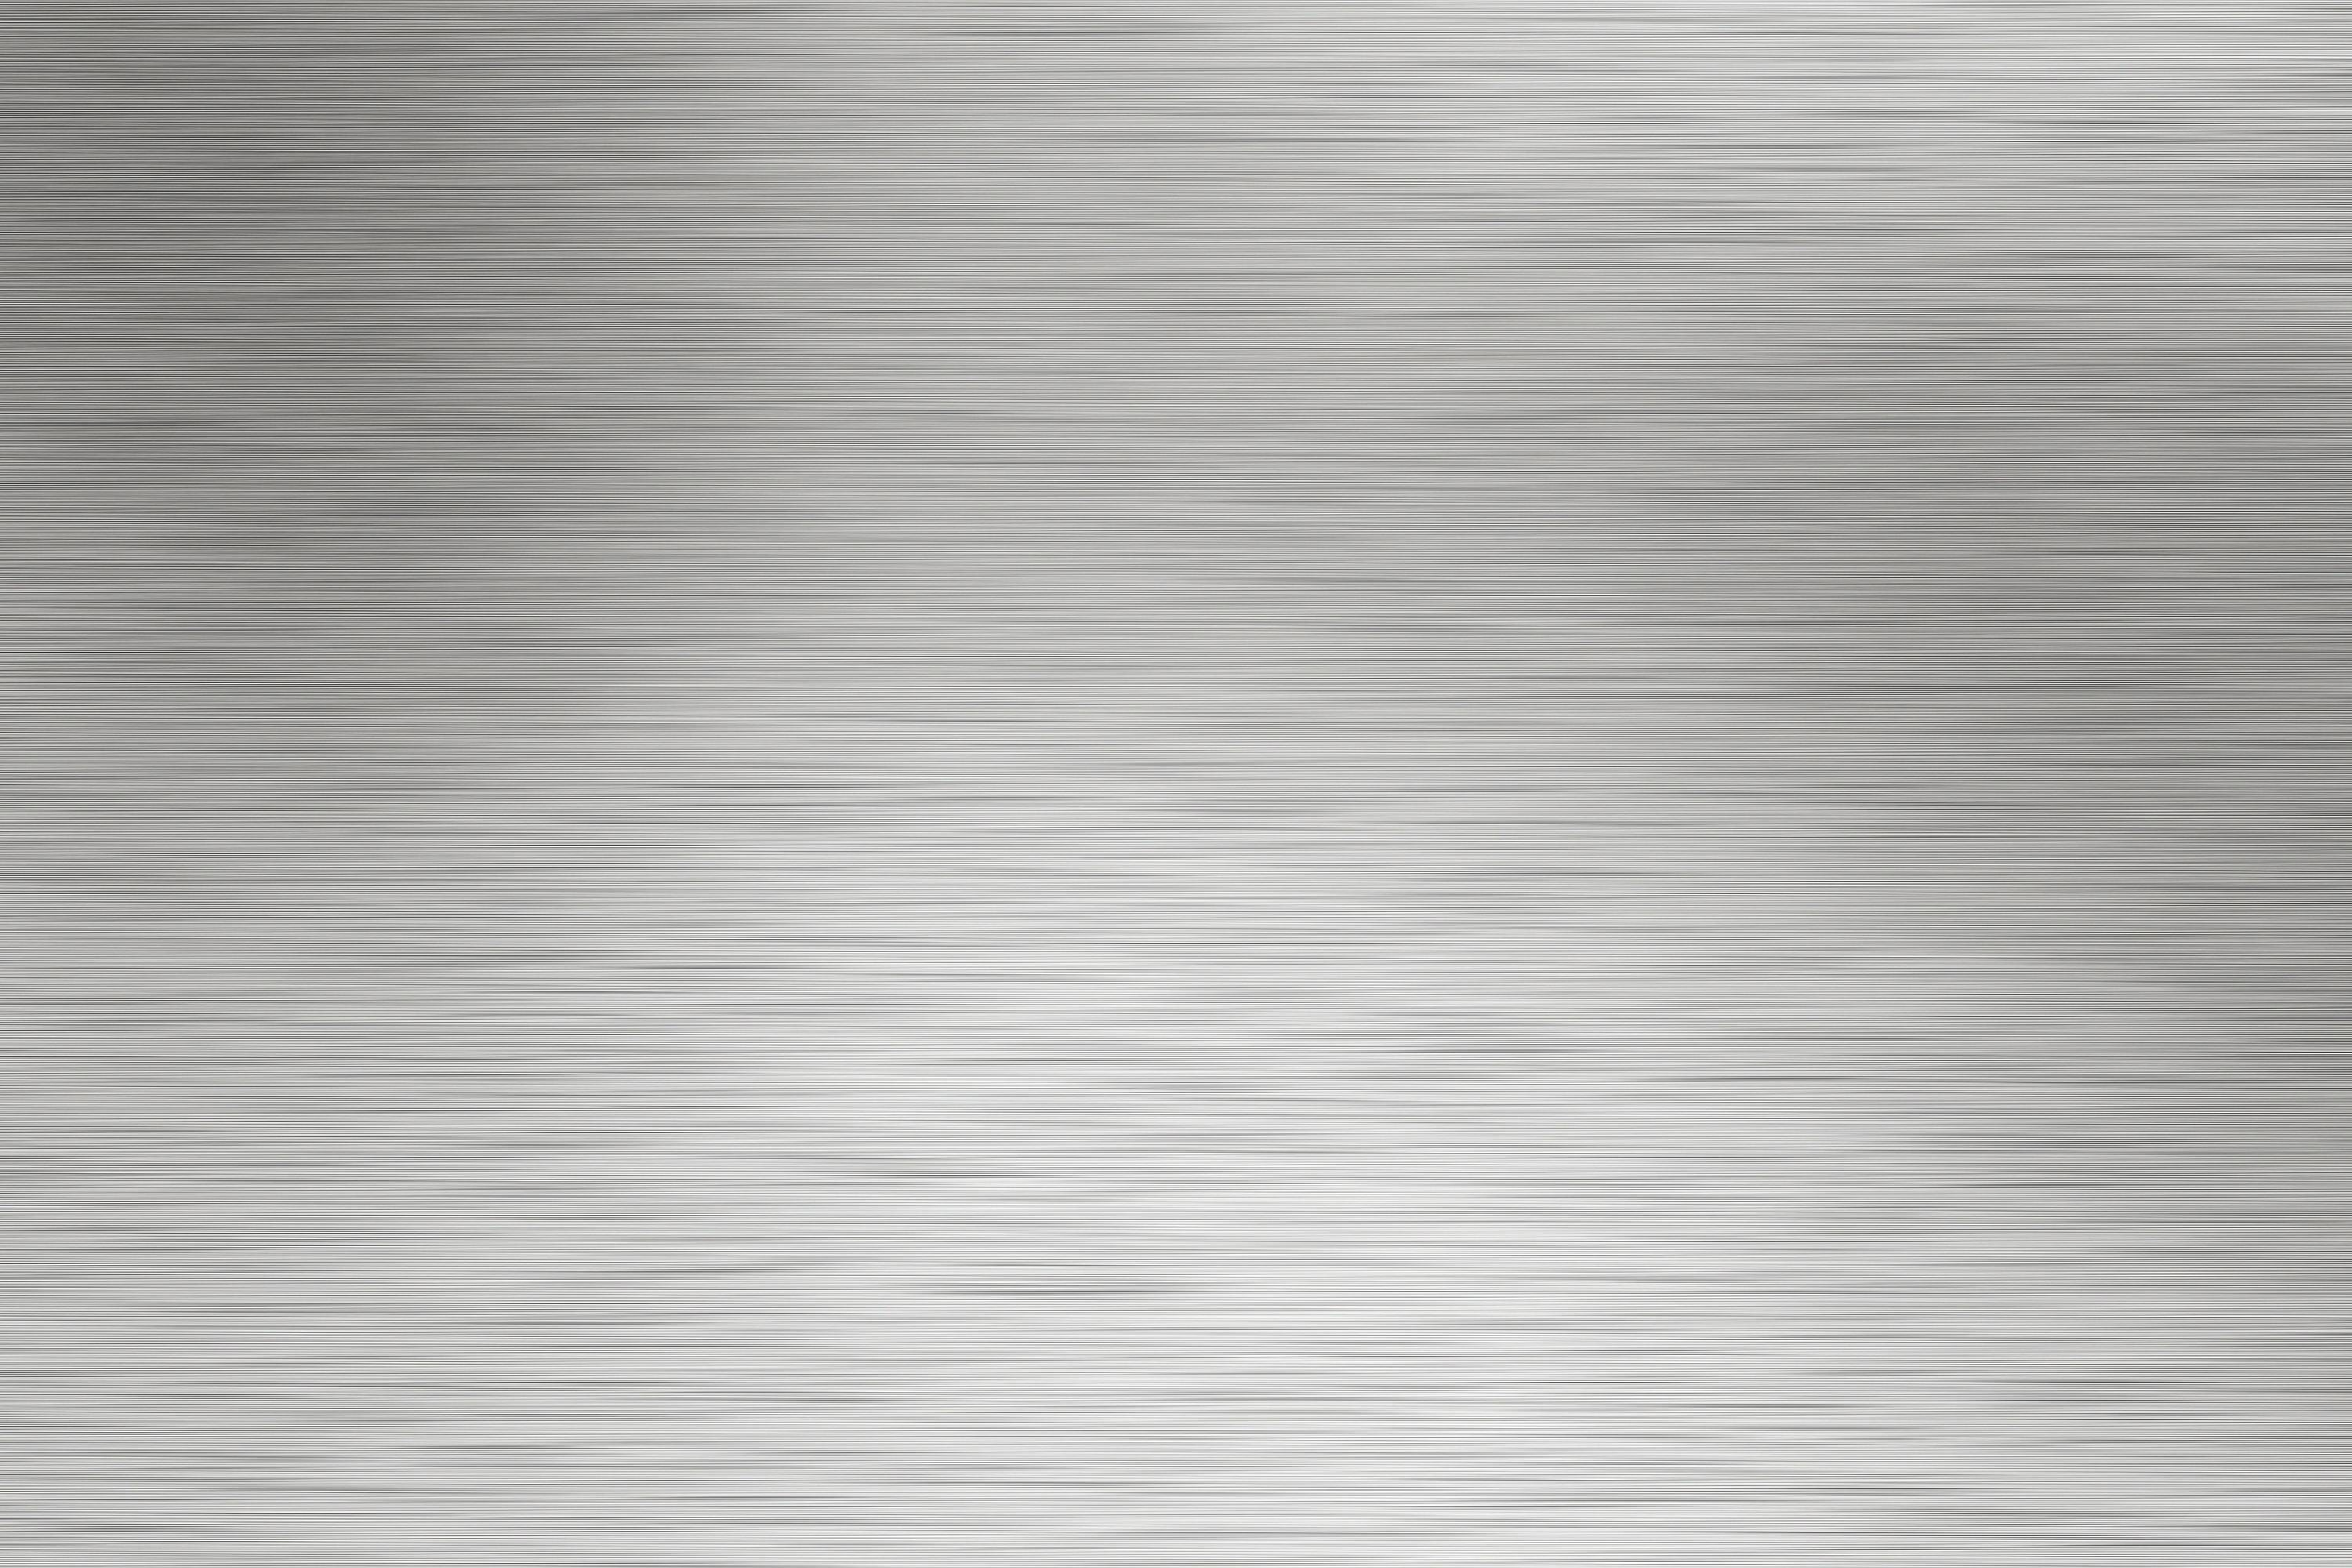 Metallic Silver Wallpaper 28 Images